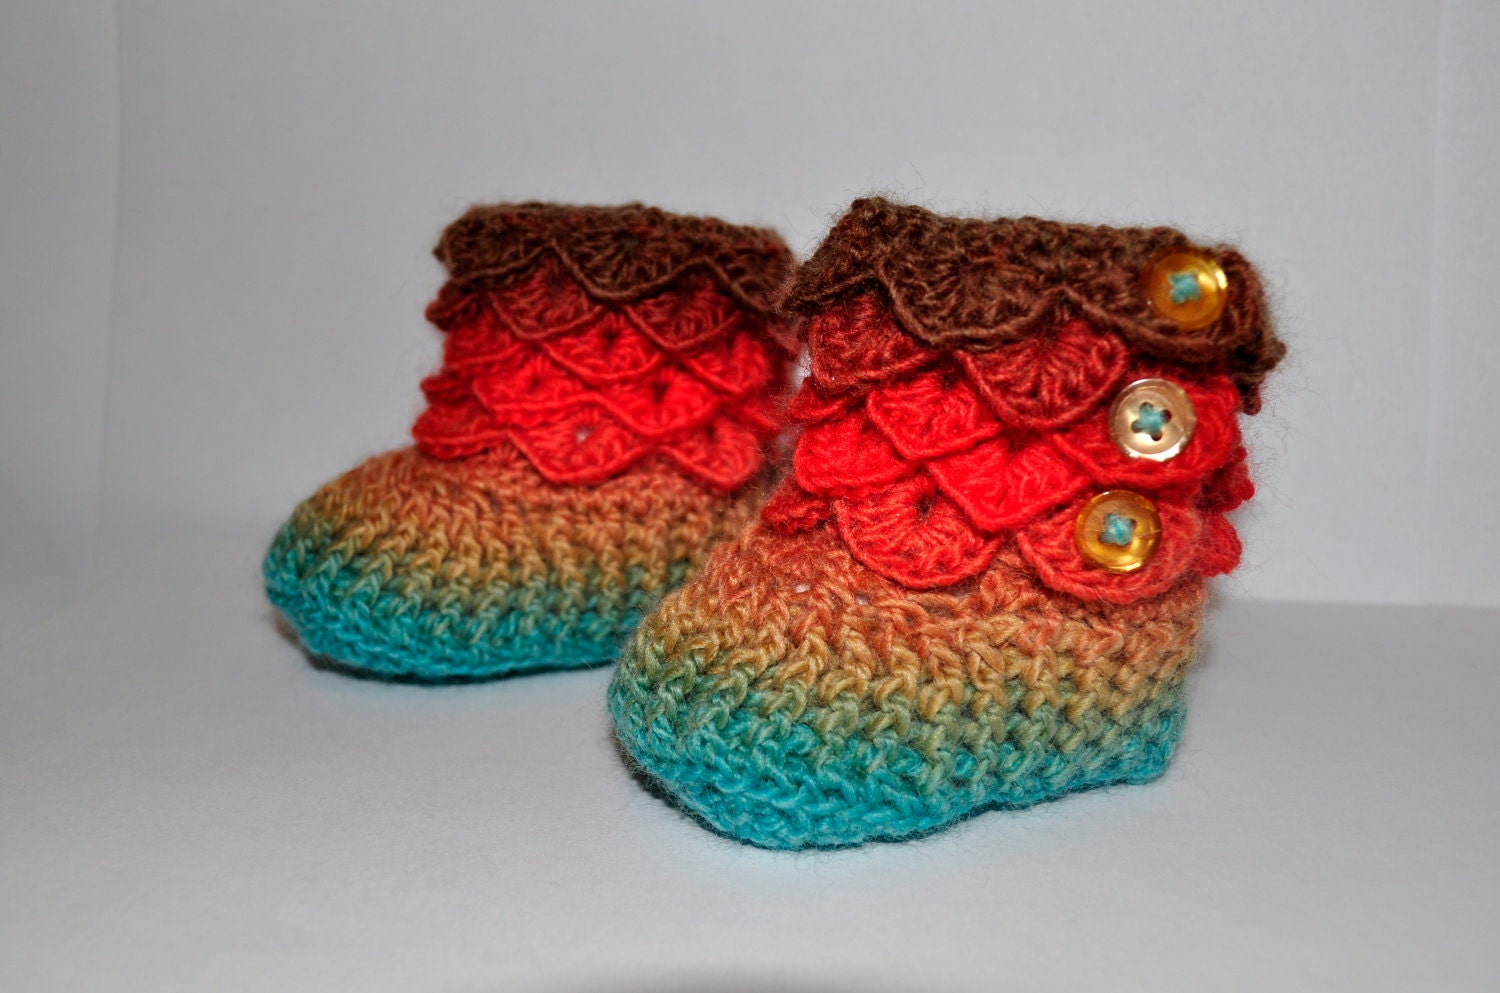 Crochet Pattern For Crocodile Stitch Baby Booties : Free Shipping Crochet Crocodile Stitch Booties by ...